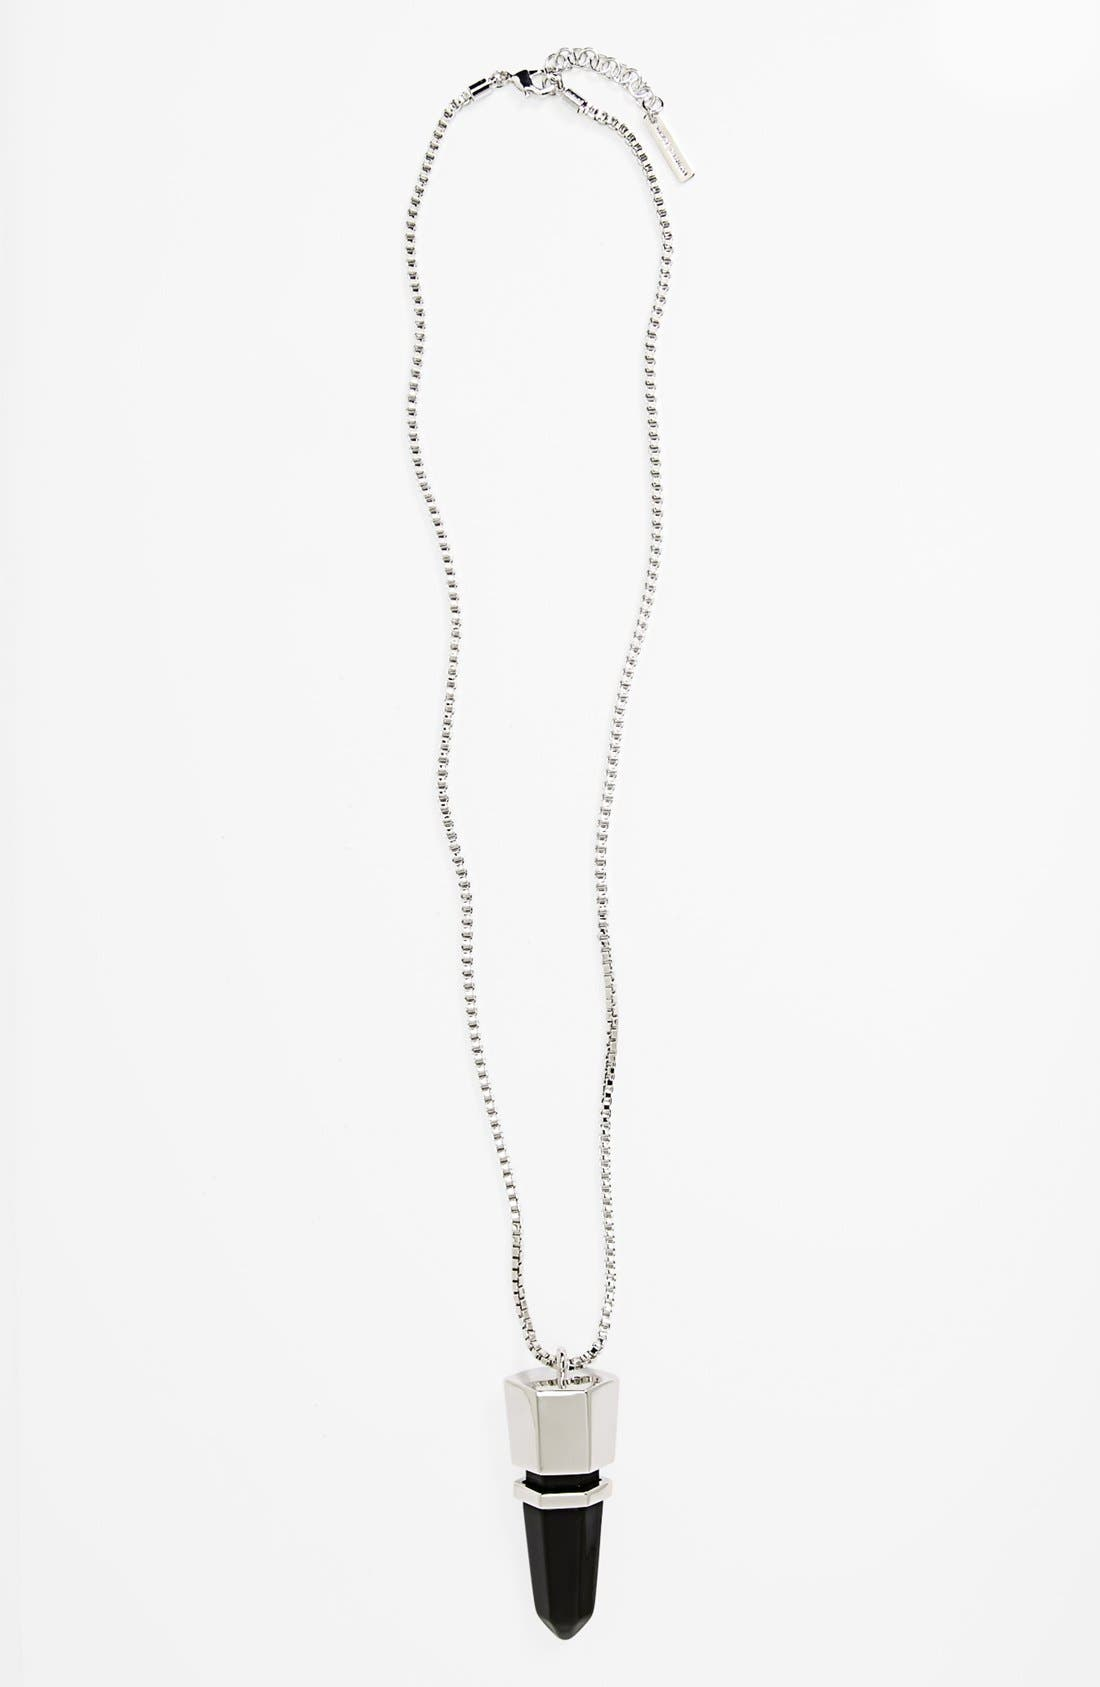 Alternate Image 1 Selected - Vince Camuto 'Bullet Proof' Pendant Necklace